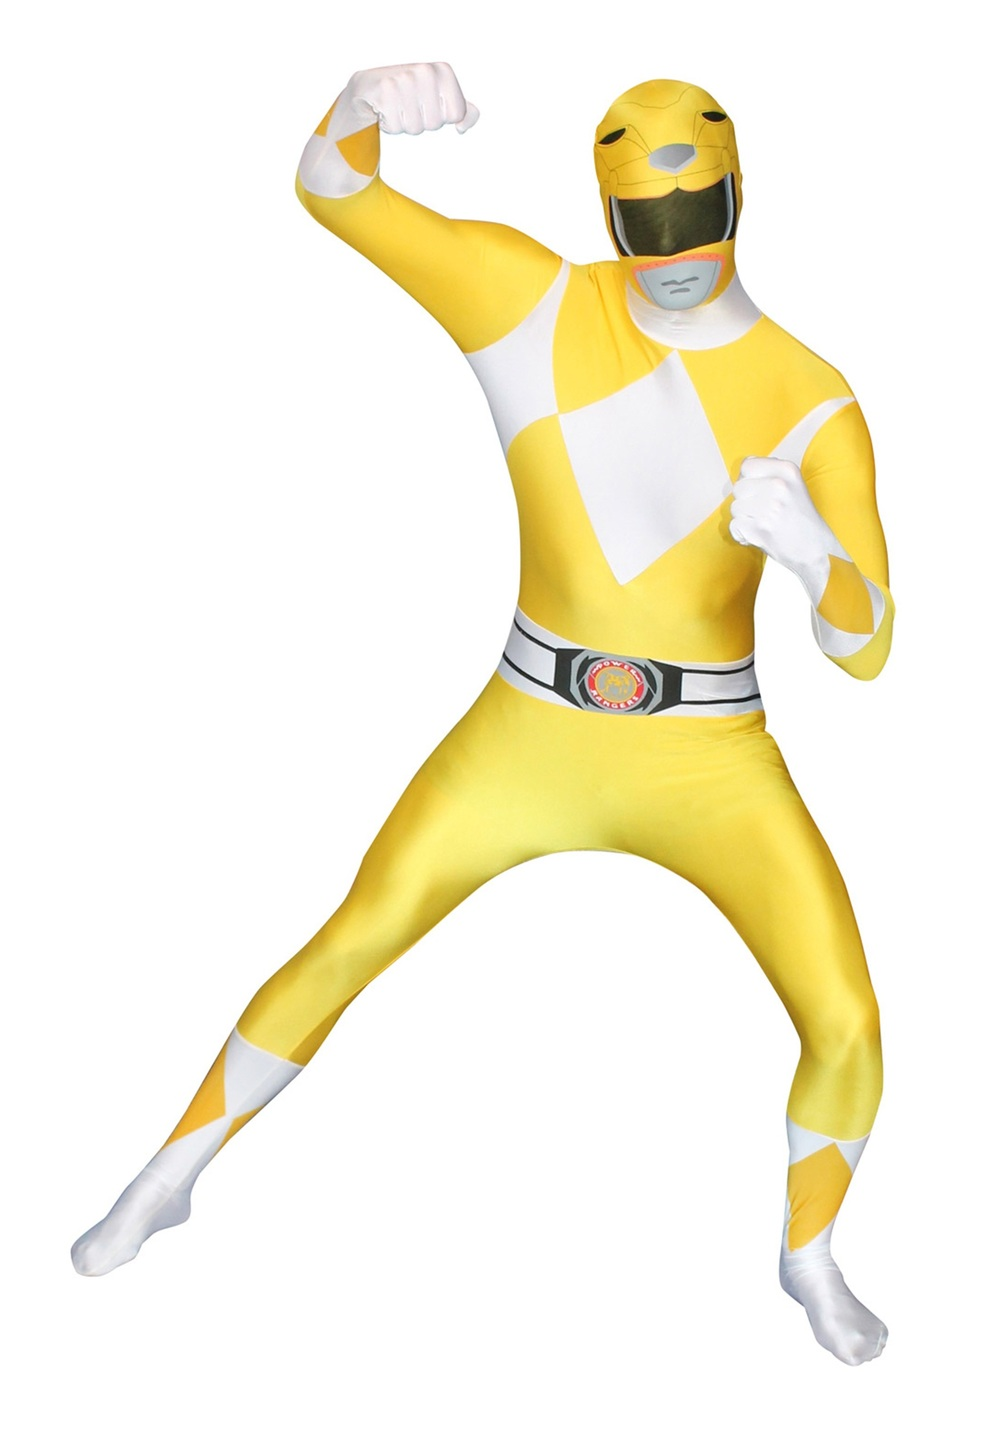 power-rangers-yellow-ranger-morphsuit-image3.jpg